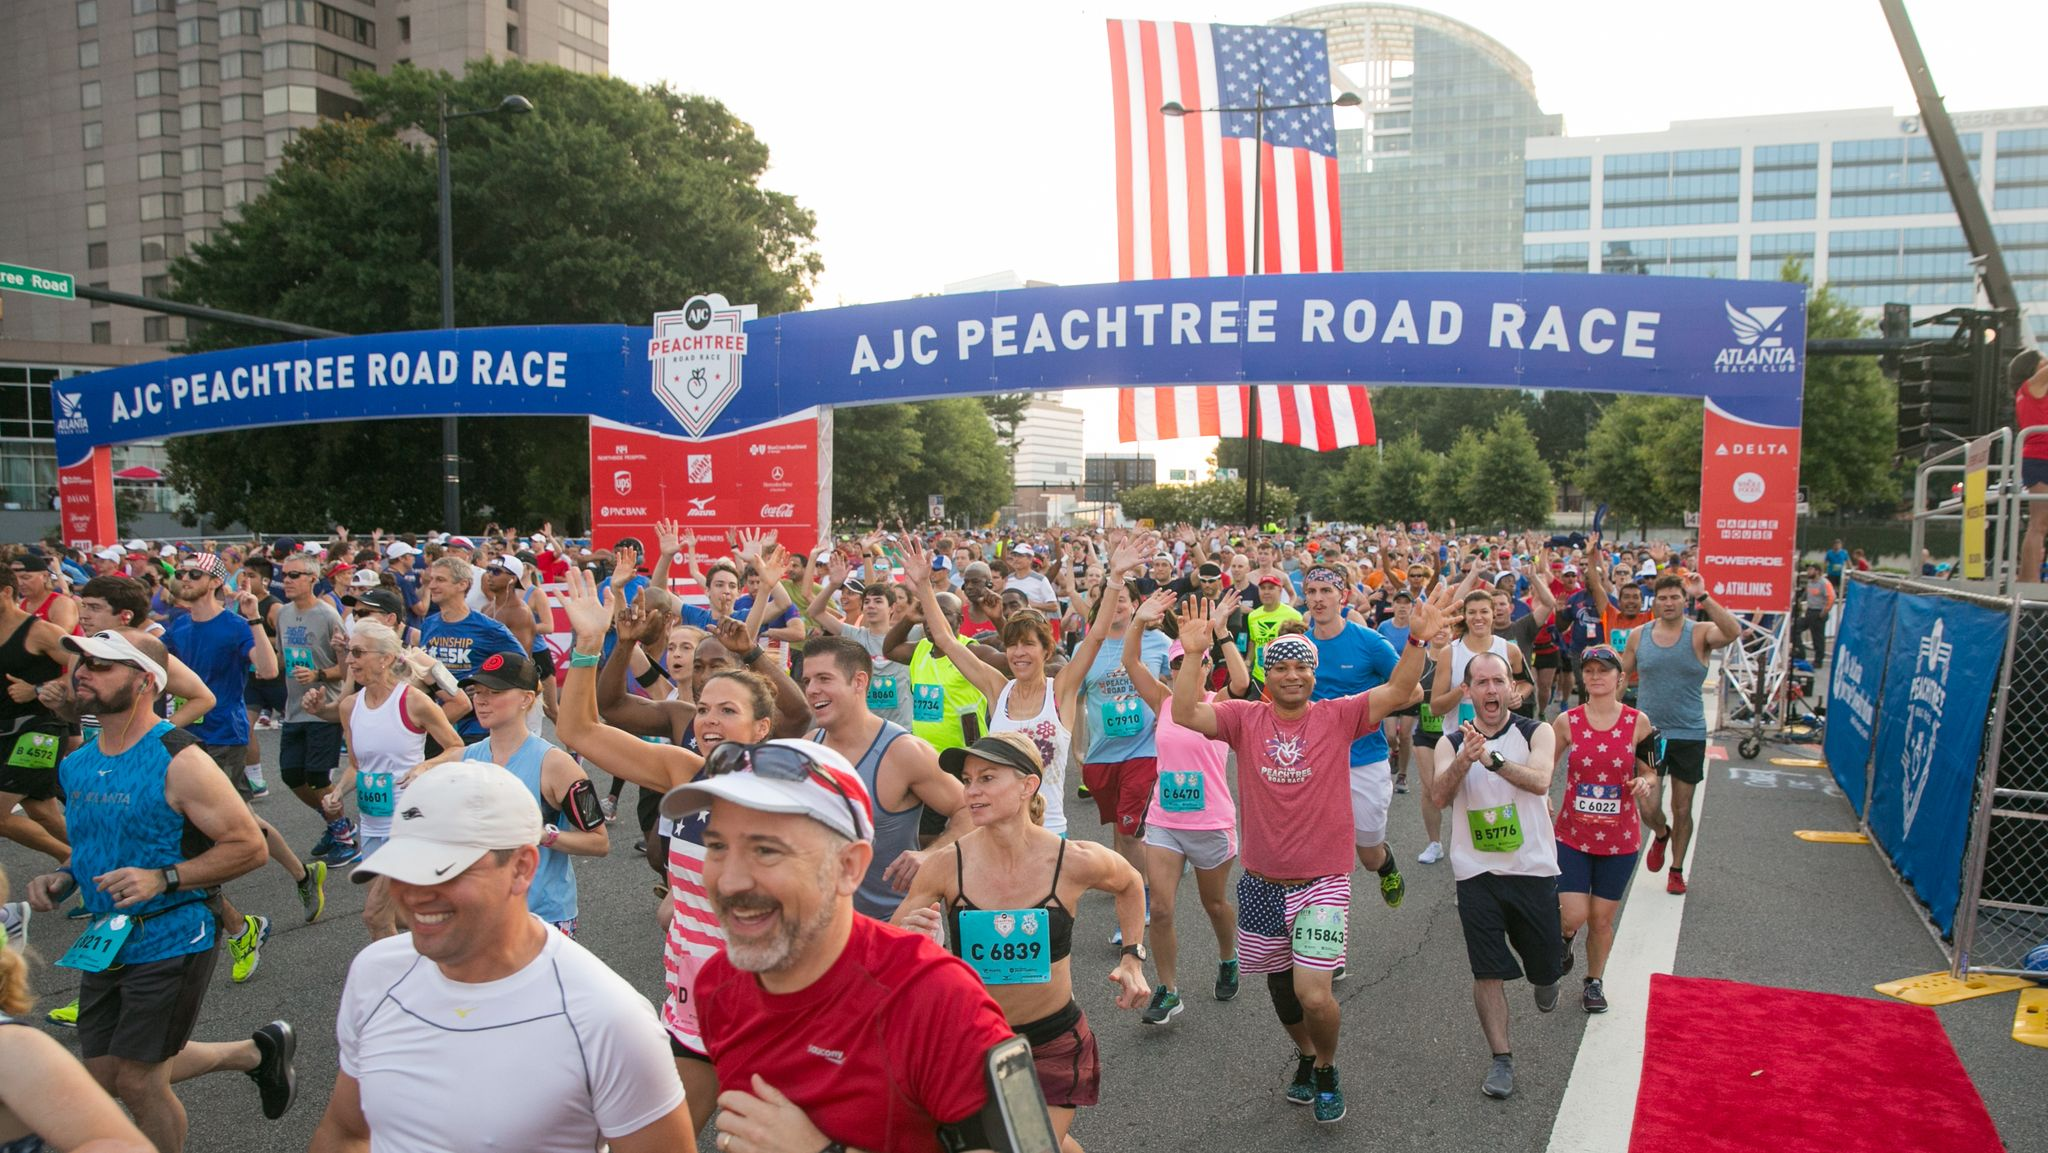 A Race Grows in Atlanta: 50 Years of Peachtree